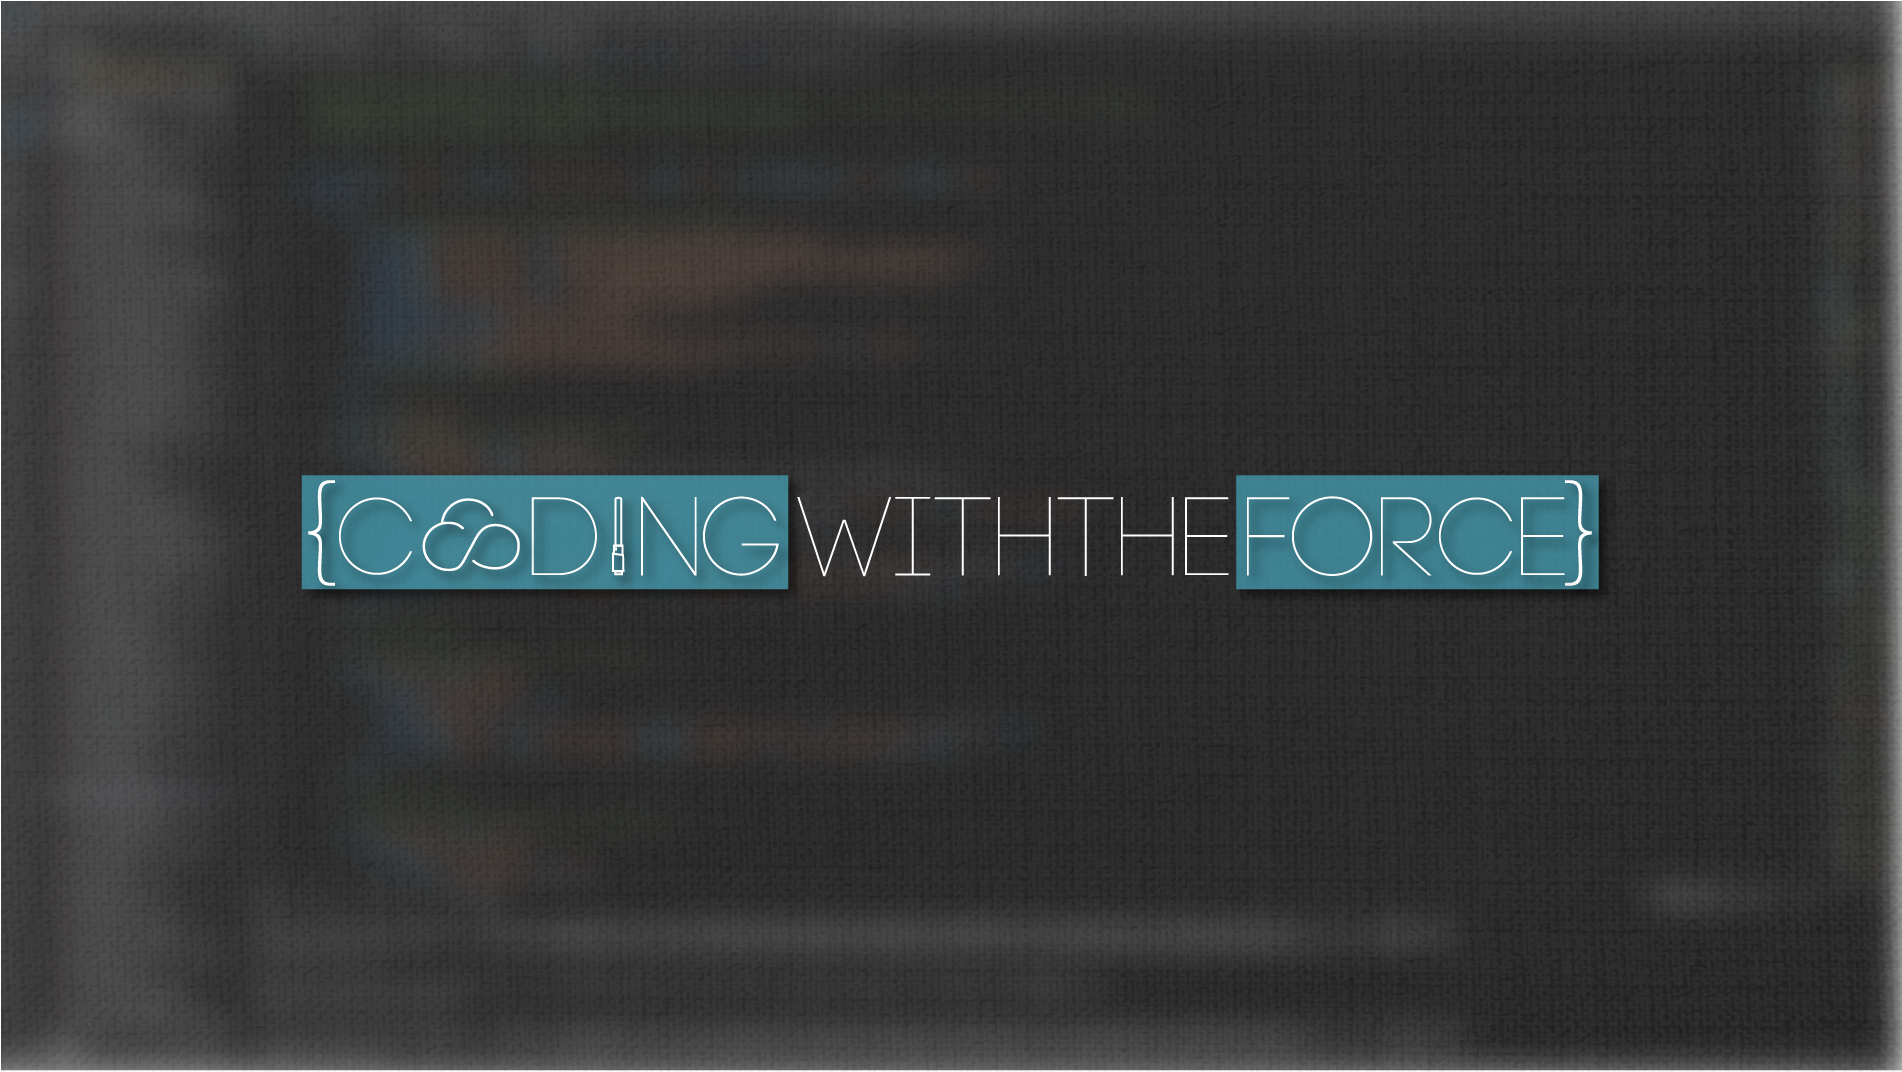 Coding With The Force